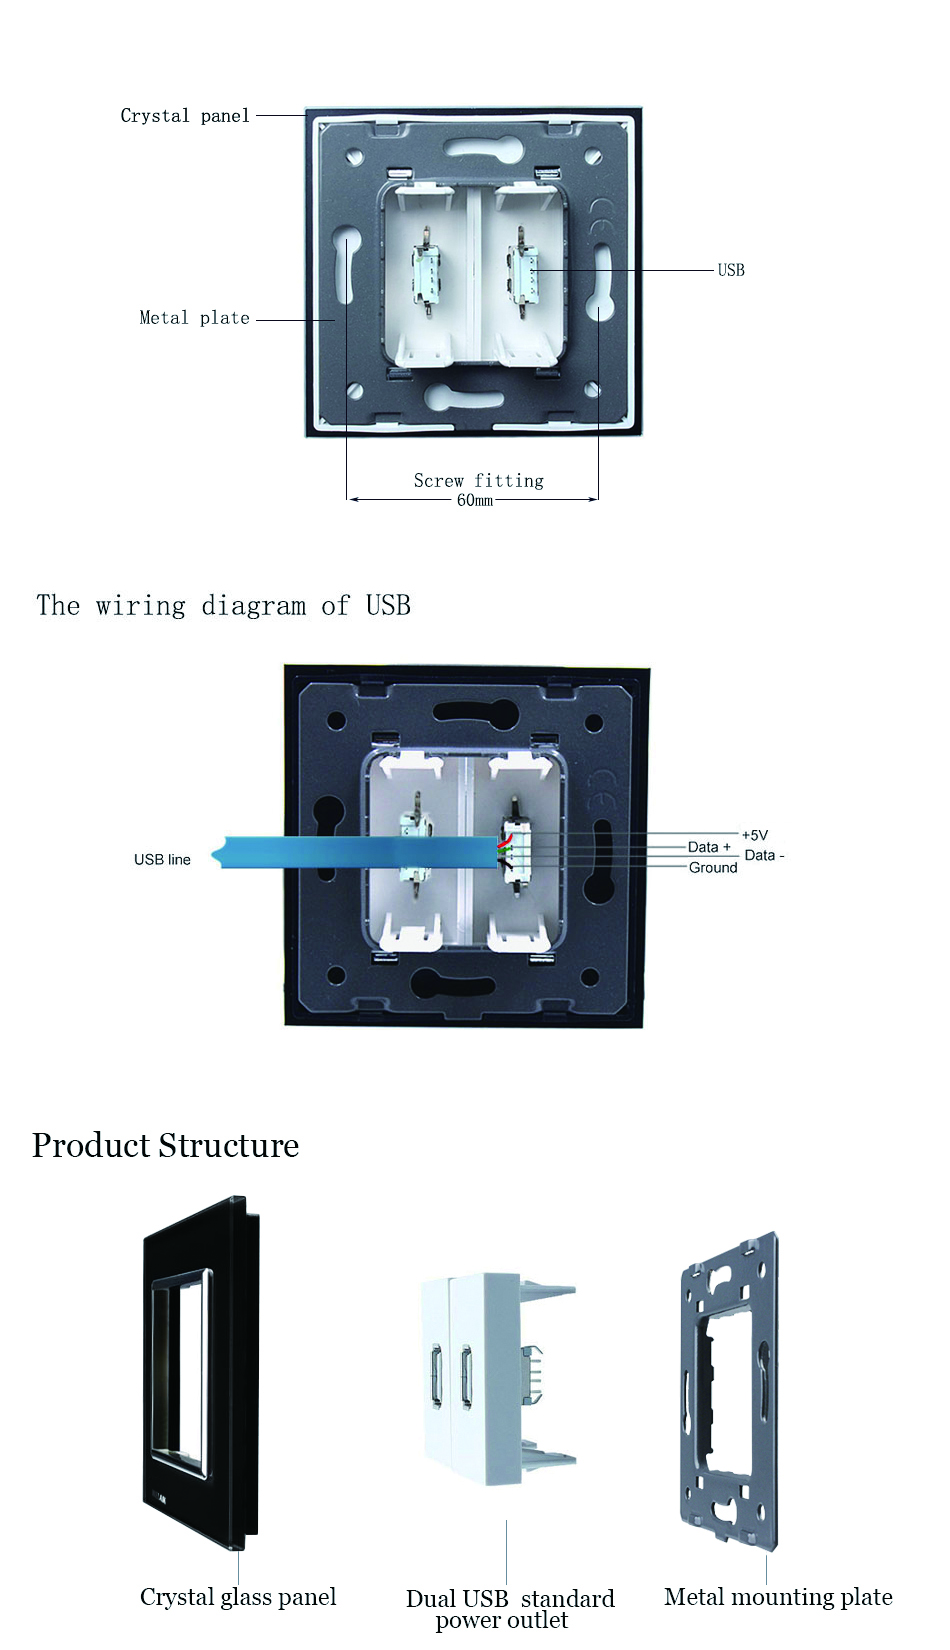 Welaik free shiping crystal glass panel 1frame eu black usb socket welaik free shiping crystal glass panel 1frame eu black usb socket usb outlet usb charging power supply a182usb asfbconference2016 Image collections